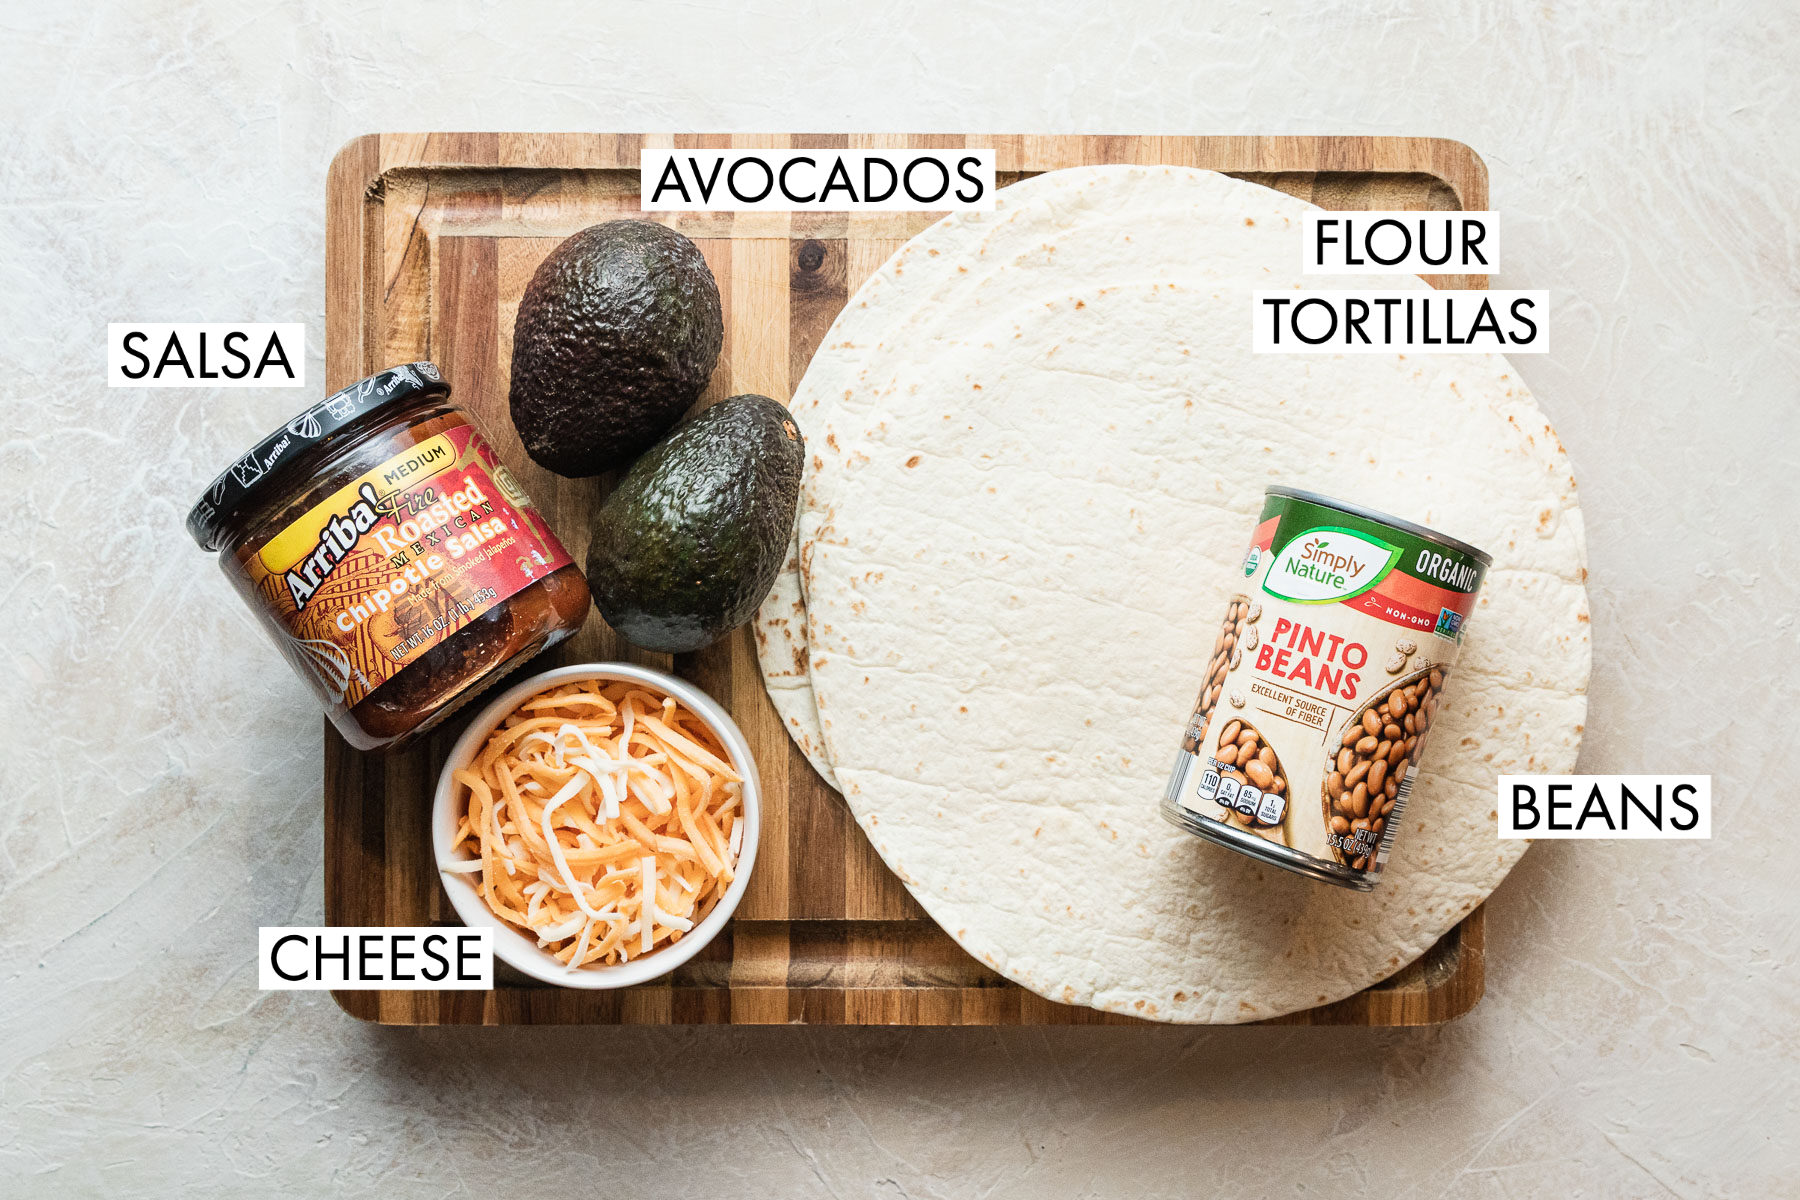 image of ingredients for grilled bean and cheese burrito